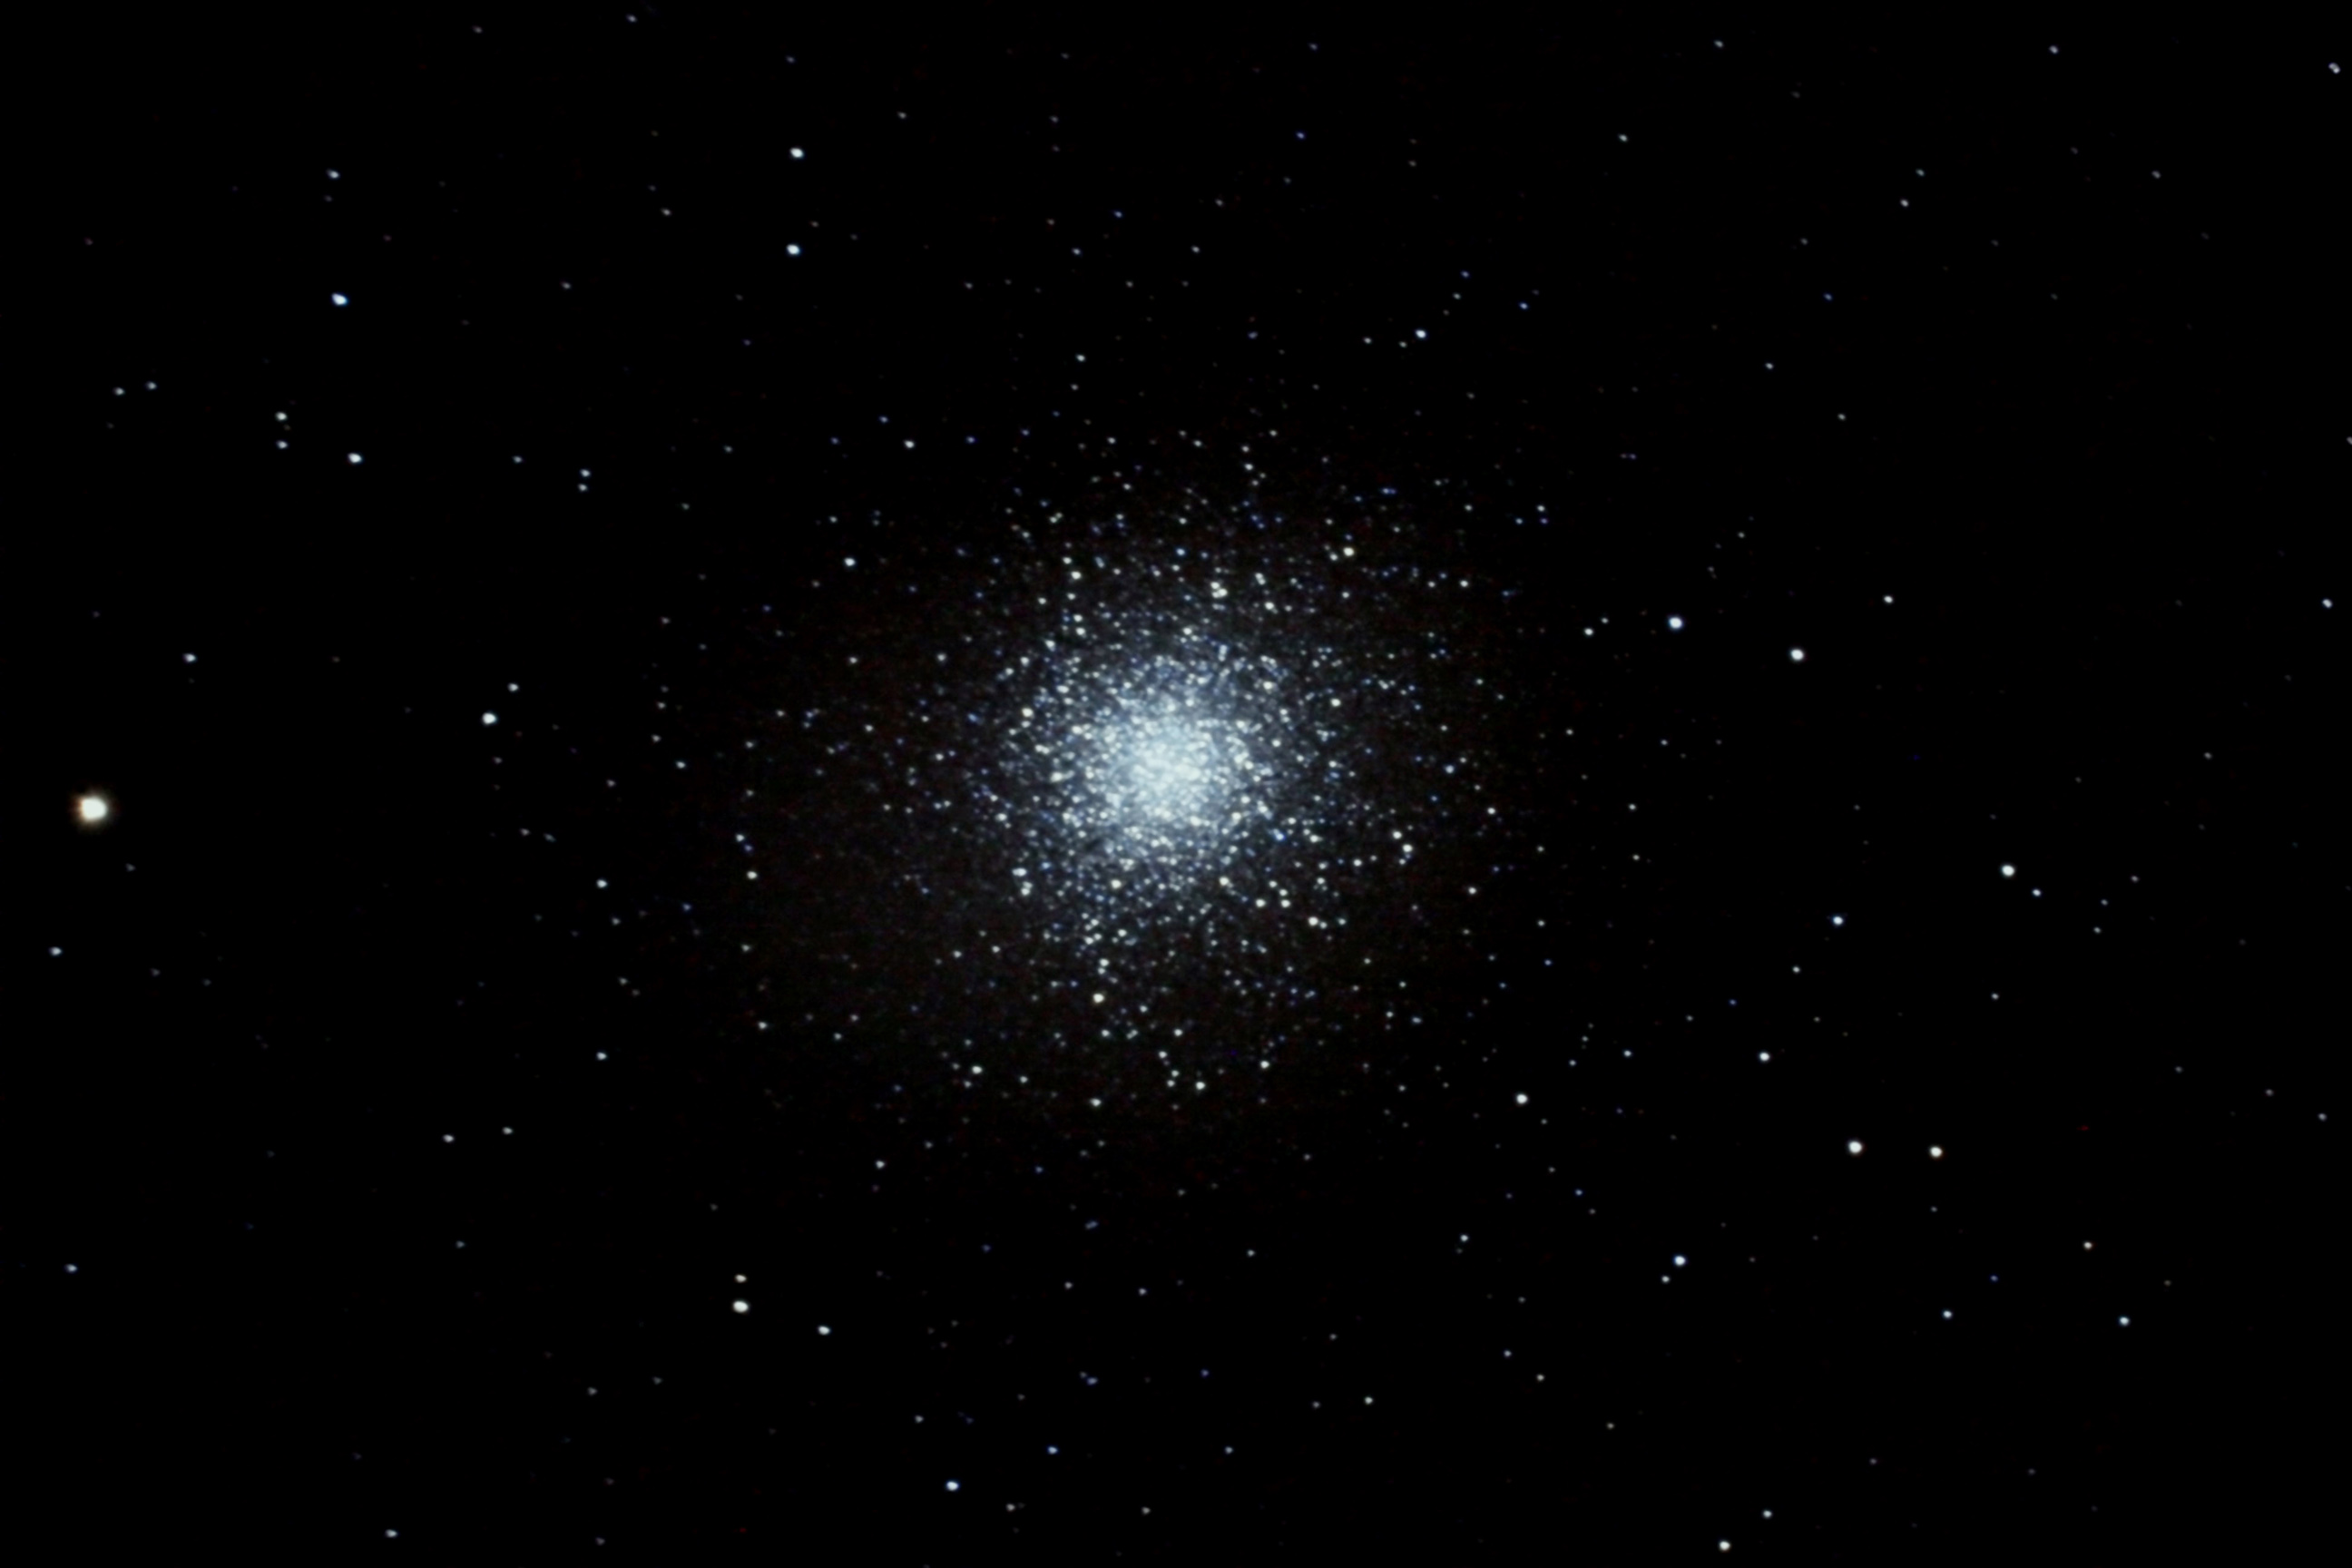 starcluster m13 - photo #25